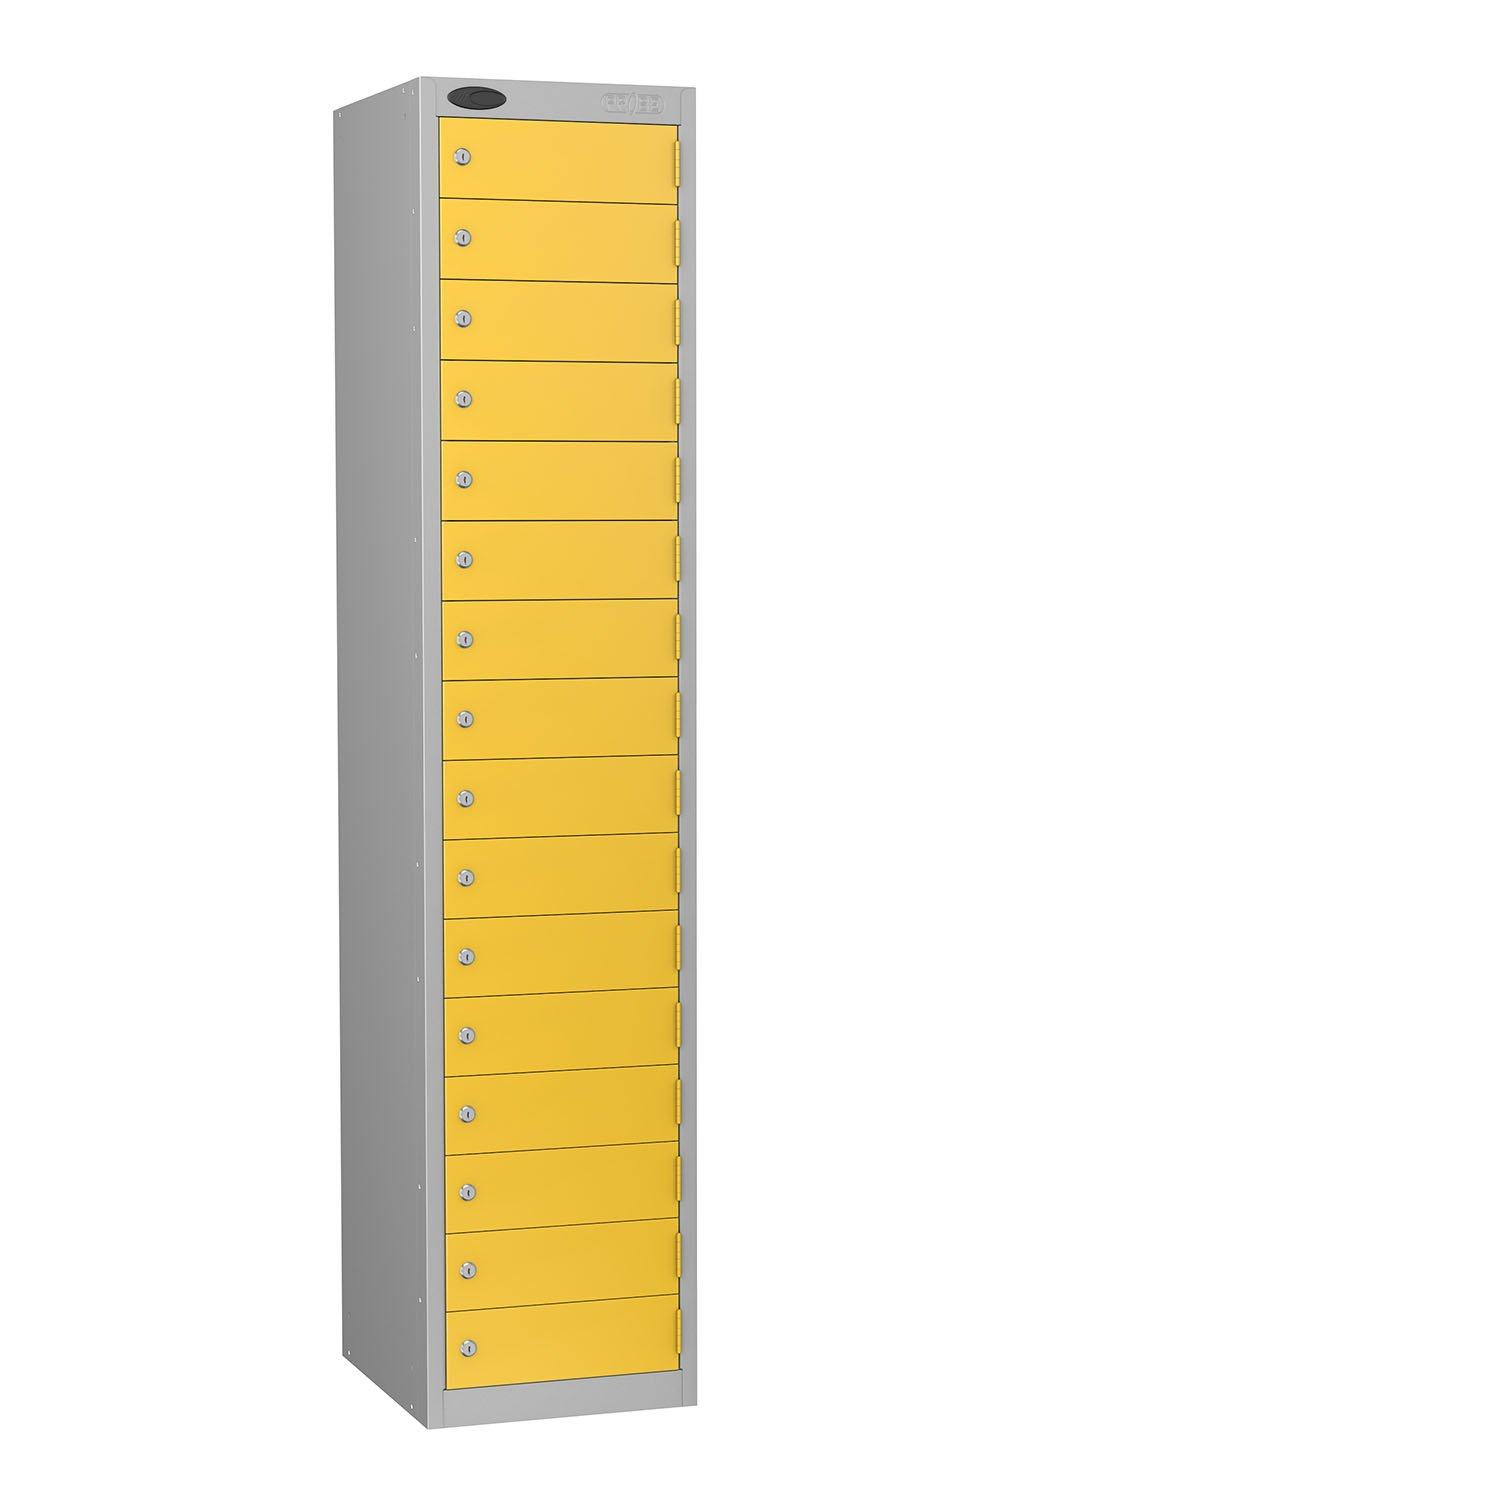 Probe 16 doors small compartments lockers in yellow colour